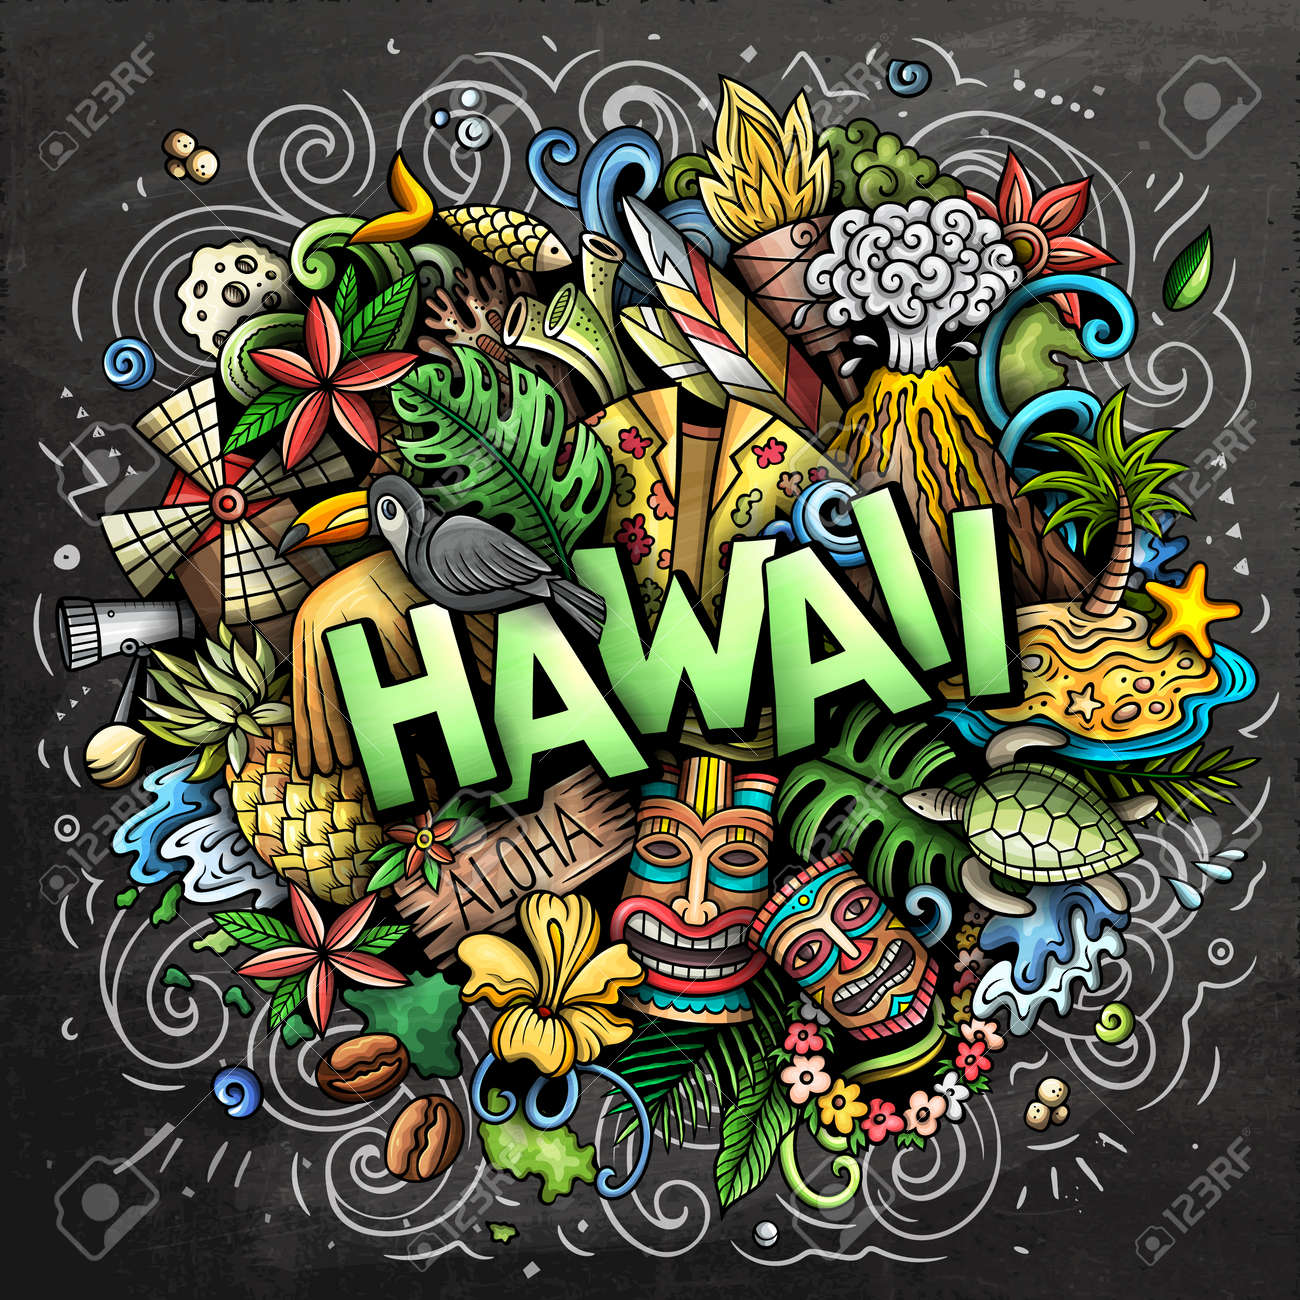 Hawaii hand drawn cartoon doodle illustration. Funny Hawaiian design. Creative art vector background. Handwritten text with elements and objects. Chalkboard composition - 171578494